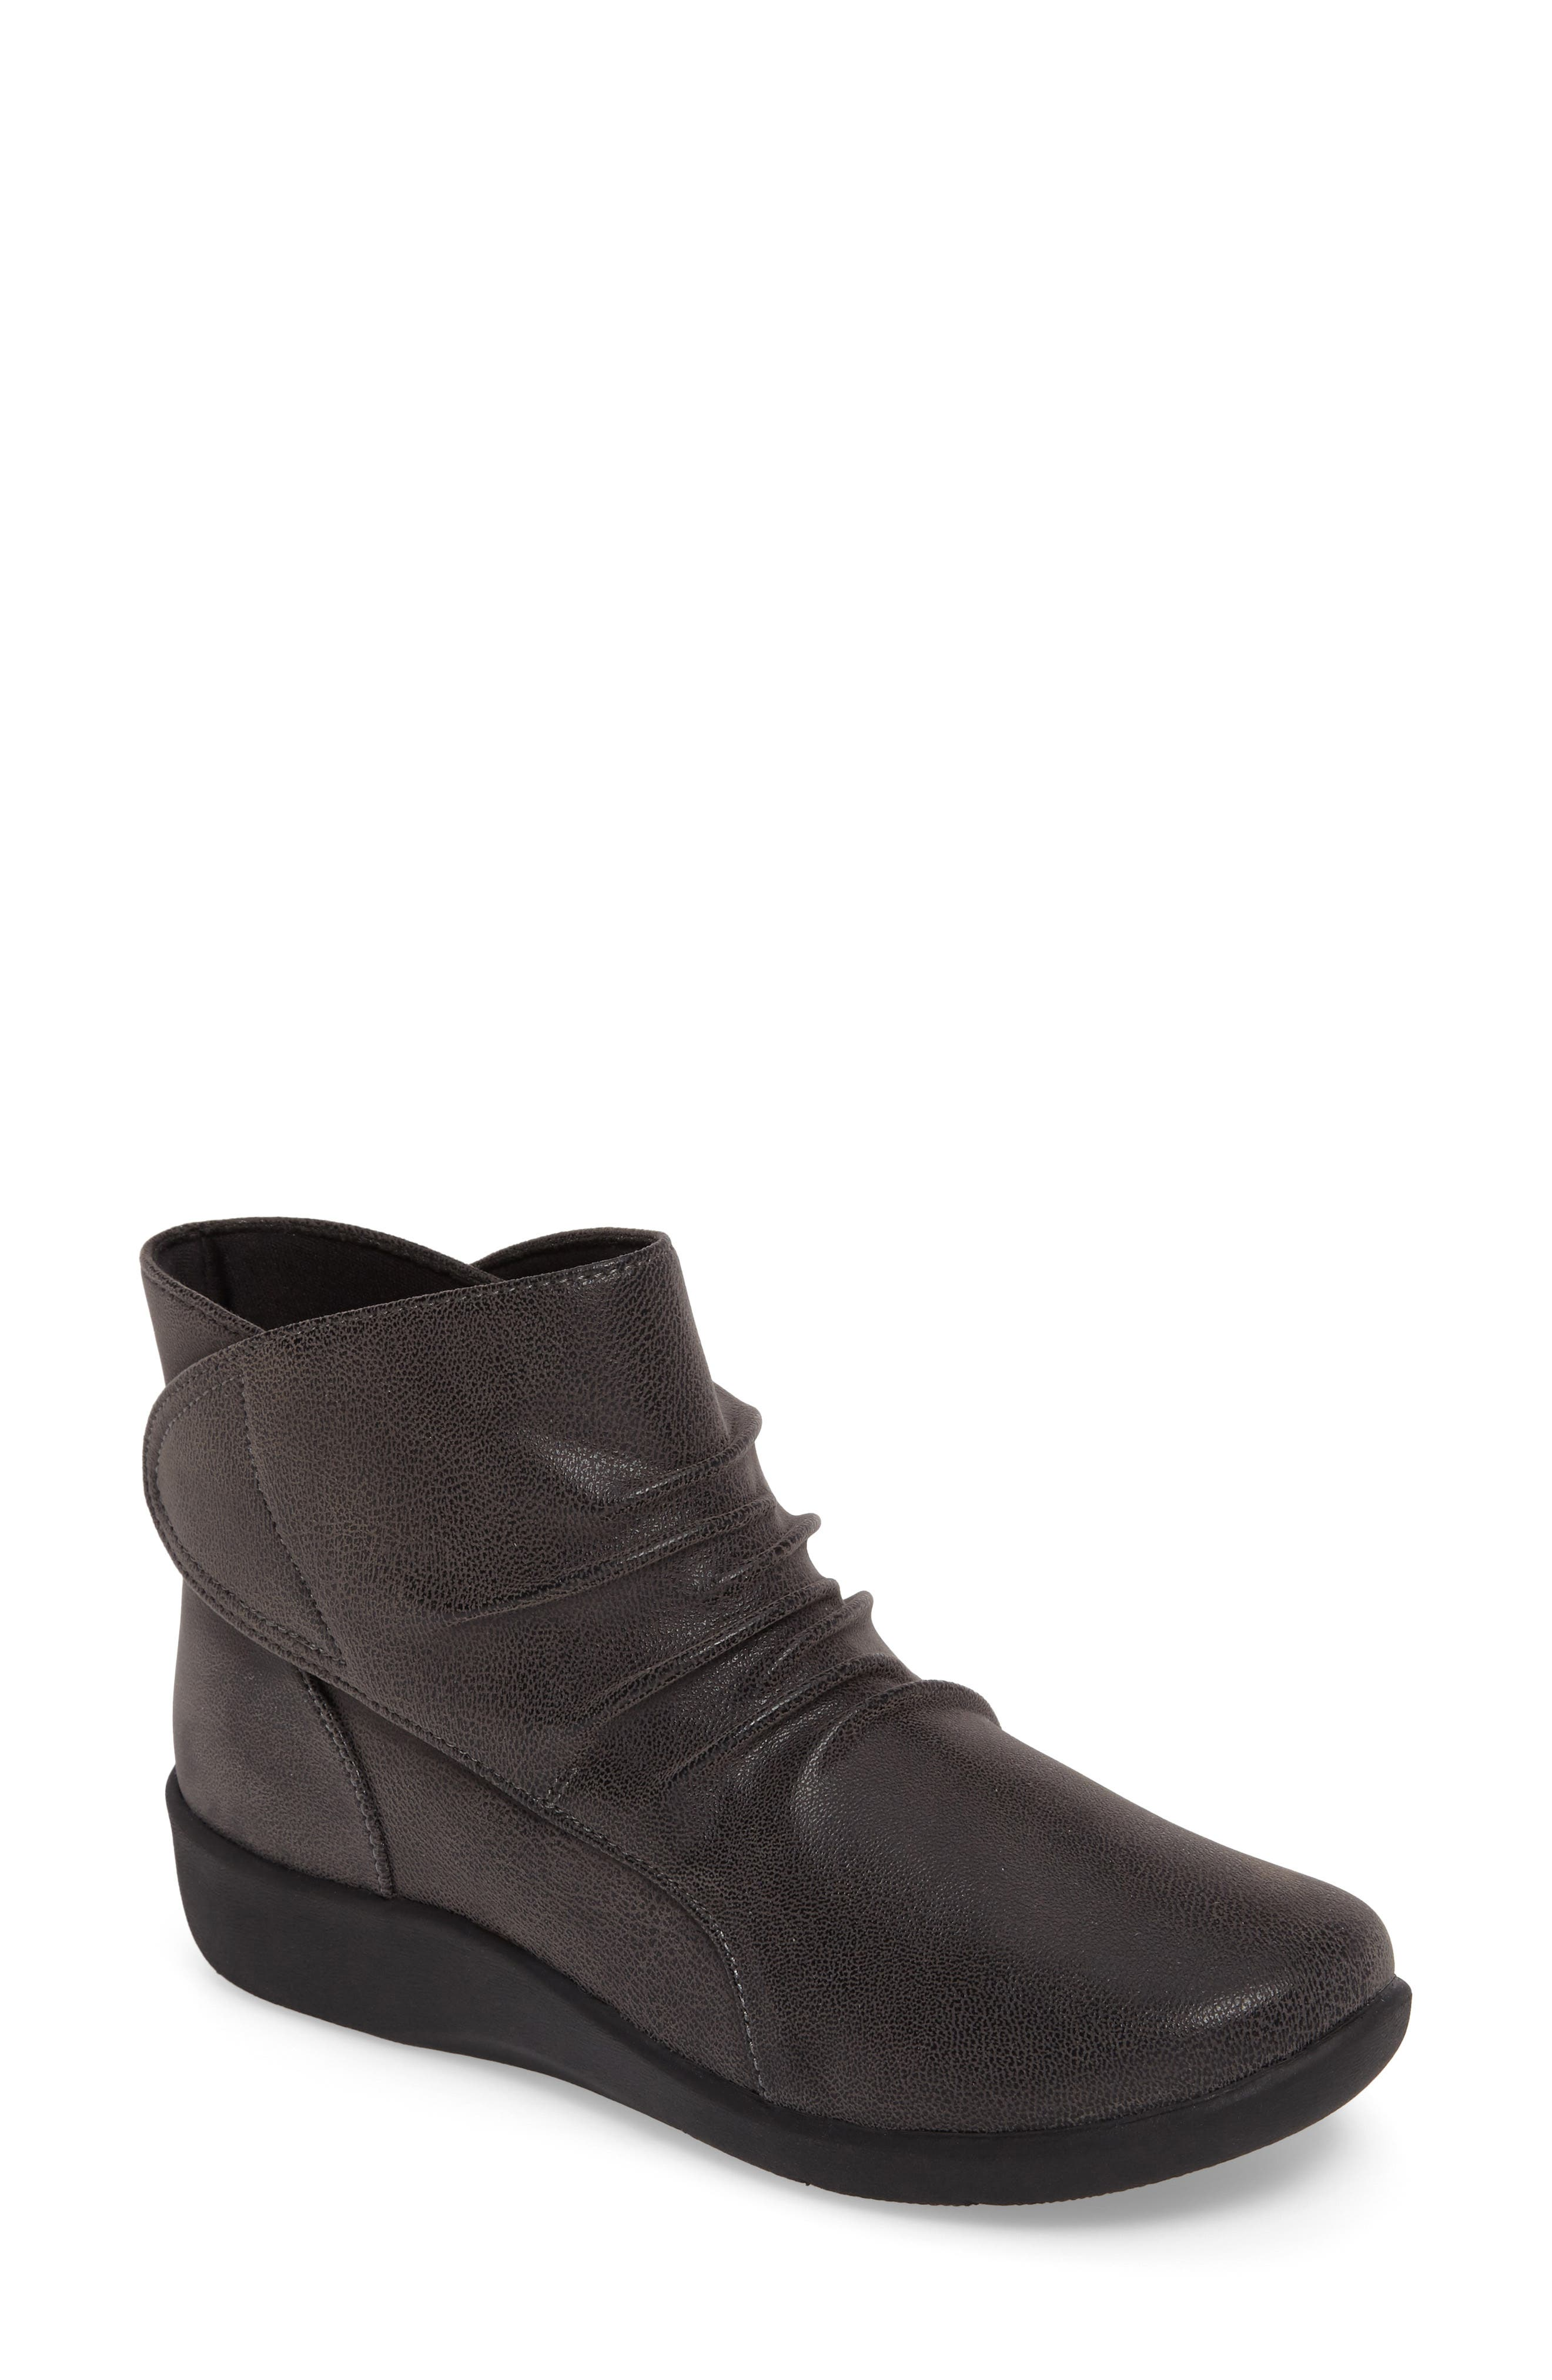 Main Image - Clarks® Sillian Sway Boot (Women)